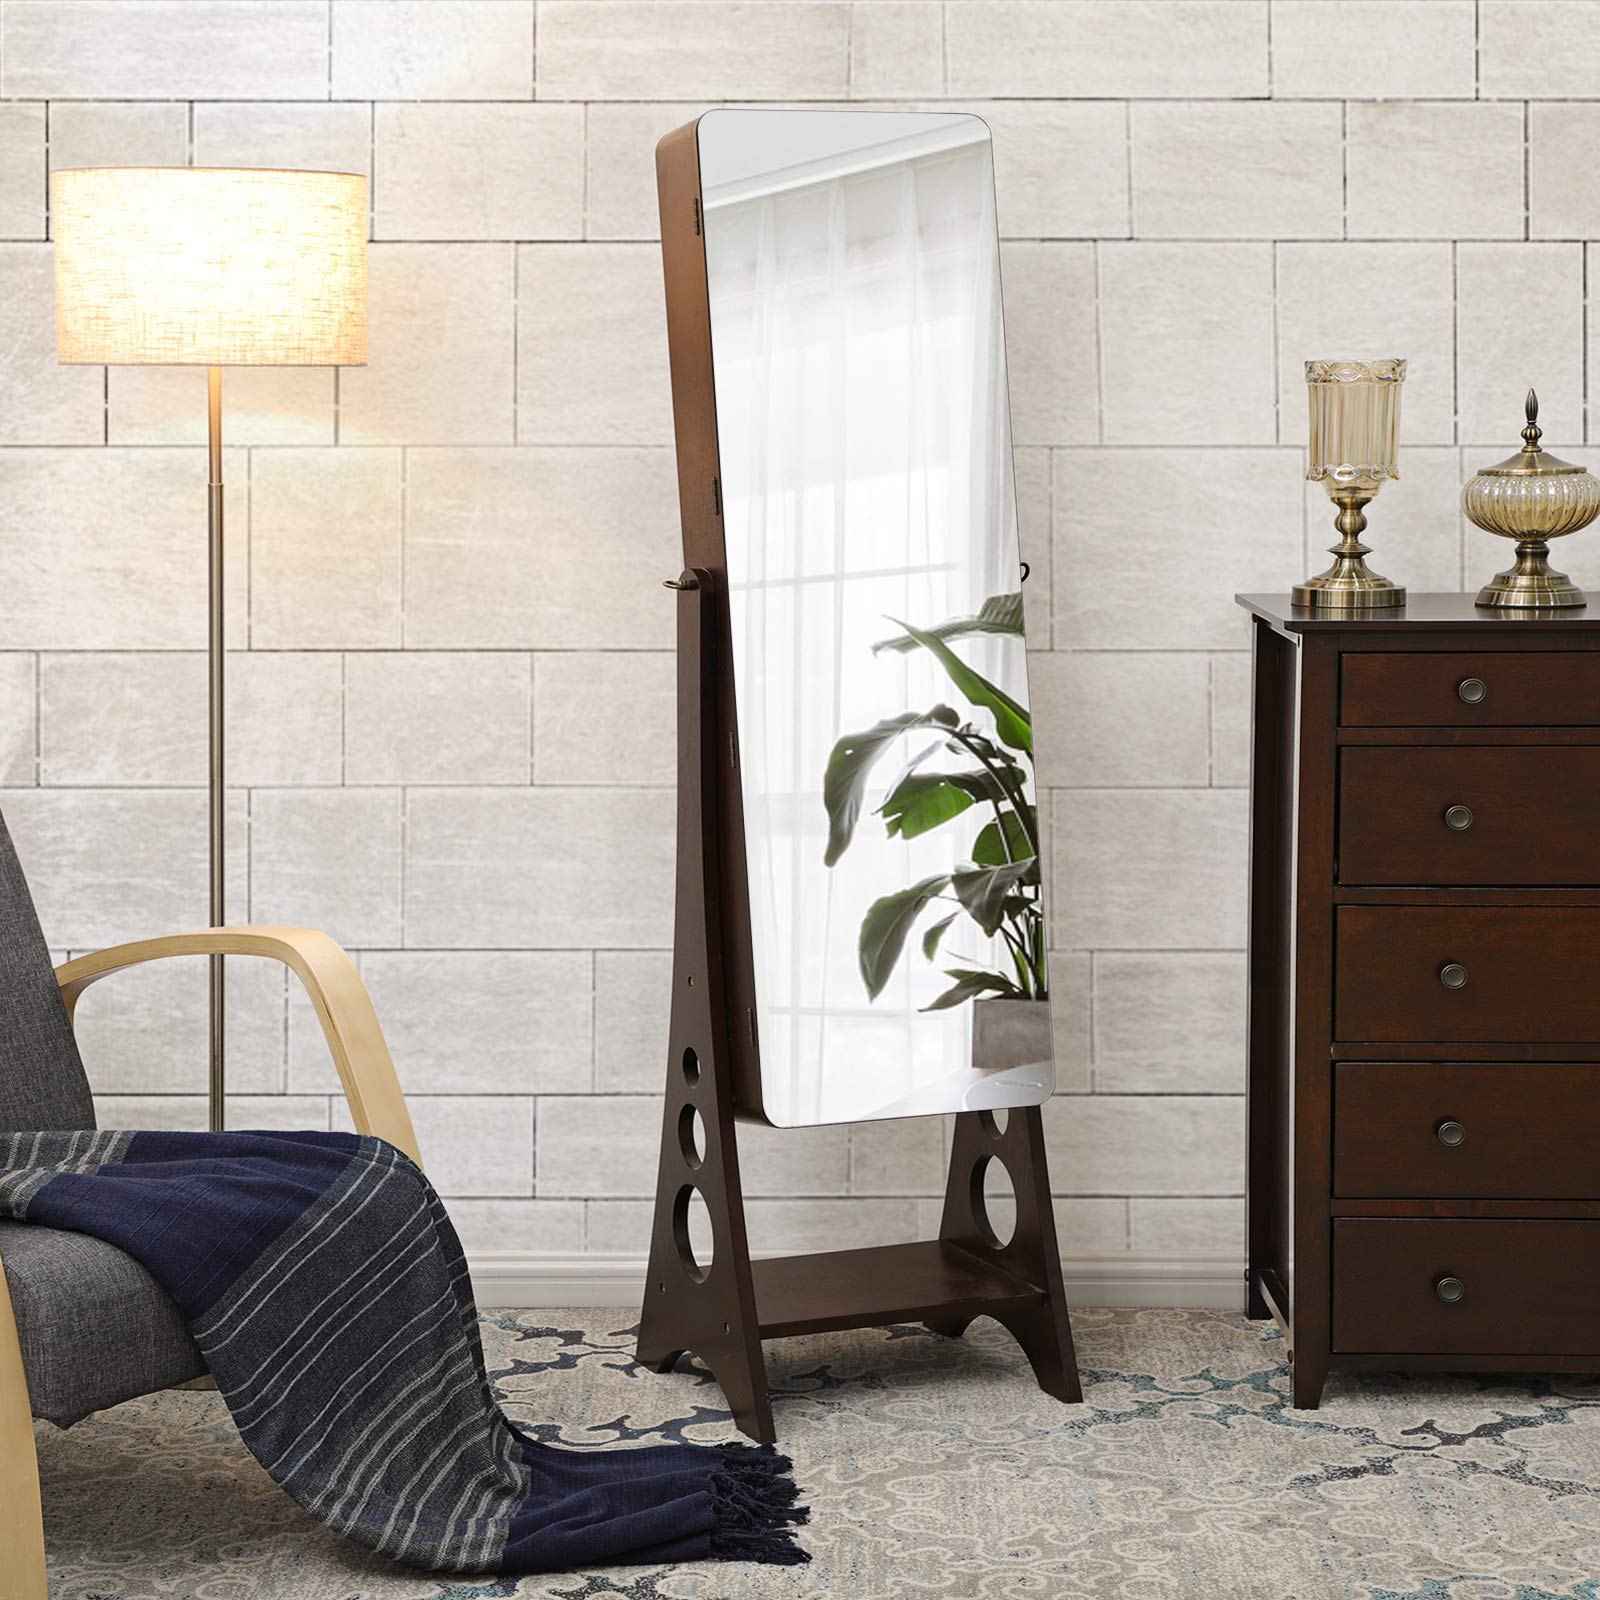 SONGMICS 8 LEDs Jewelry Cabinet Armoire with Beveled Edge Mirror, Gorgeous Jewelry Organizer Large Capacity Brown Patented UJJC89K by SONGMICS (Image #2)